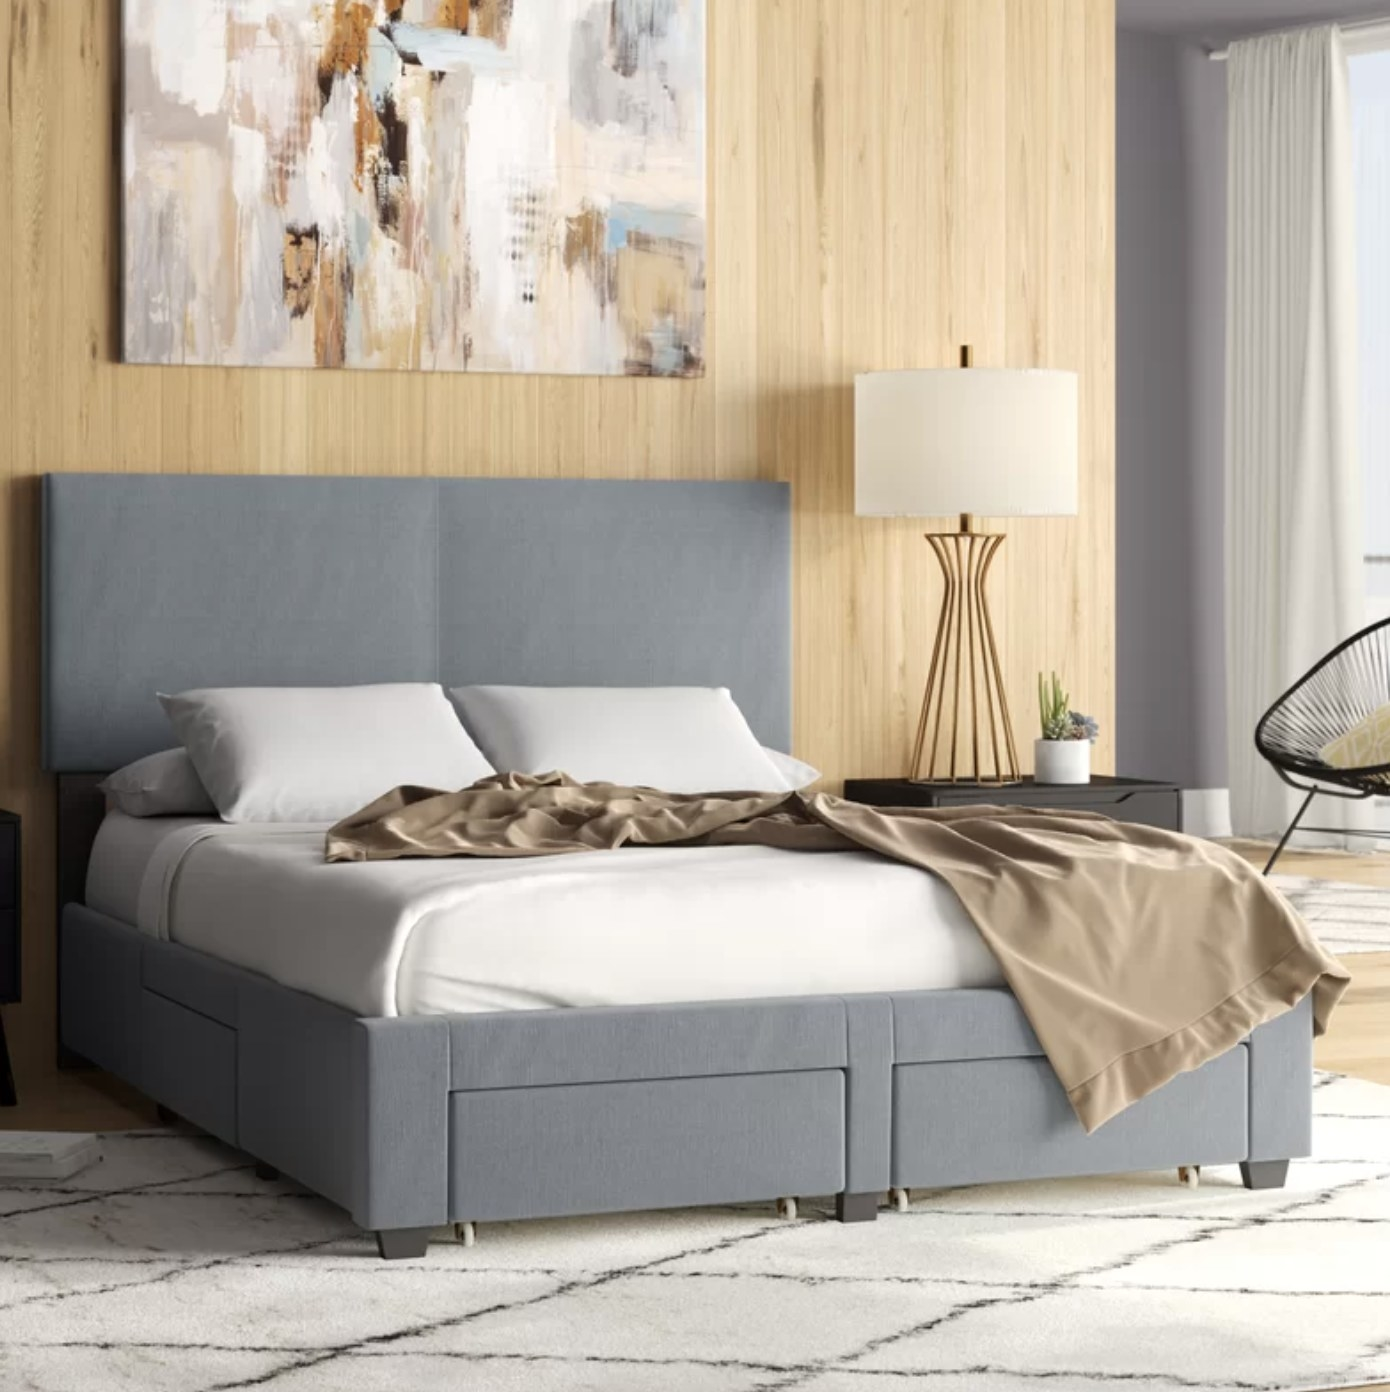 the bed frame in a gray color with three of the drawers displayed